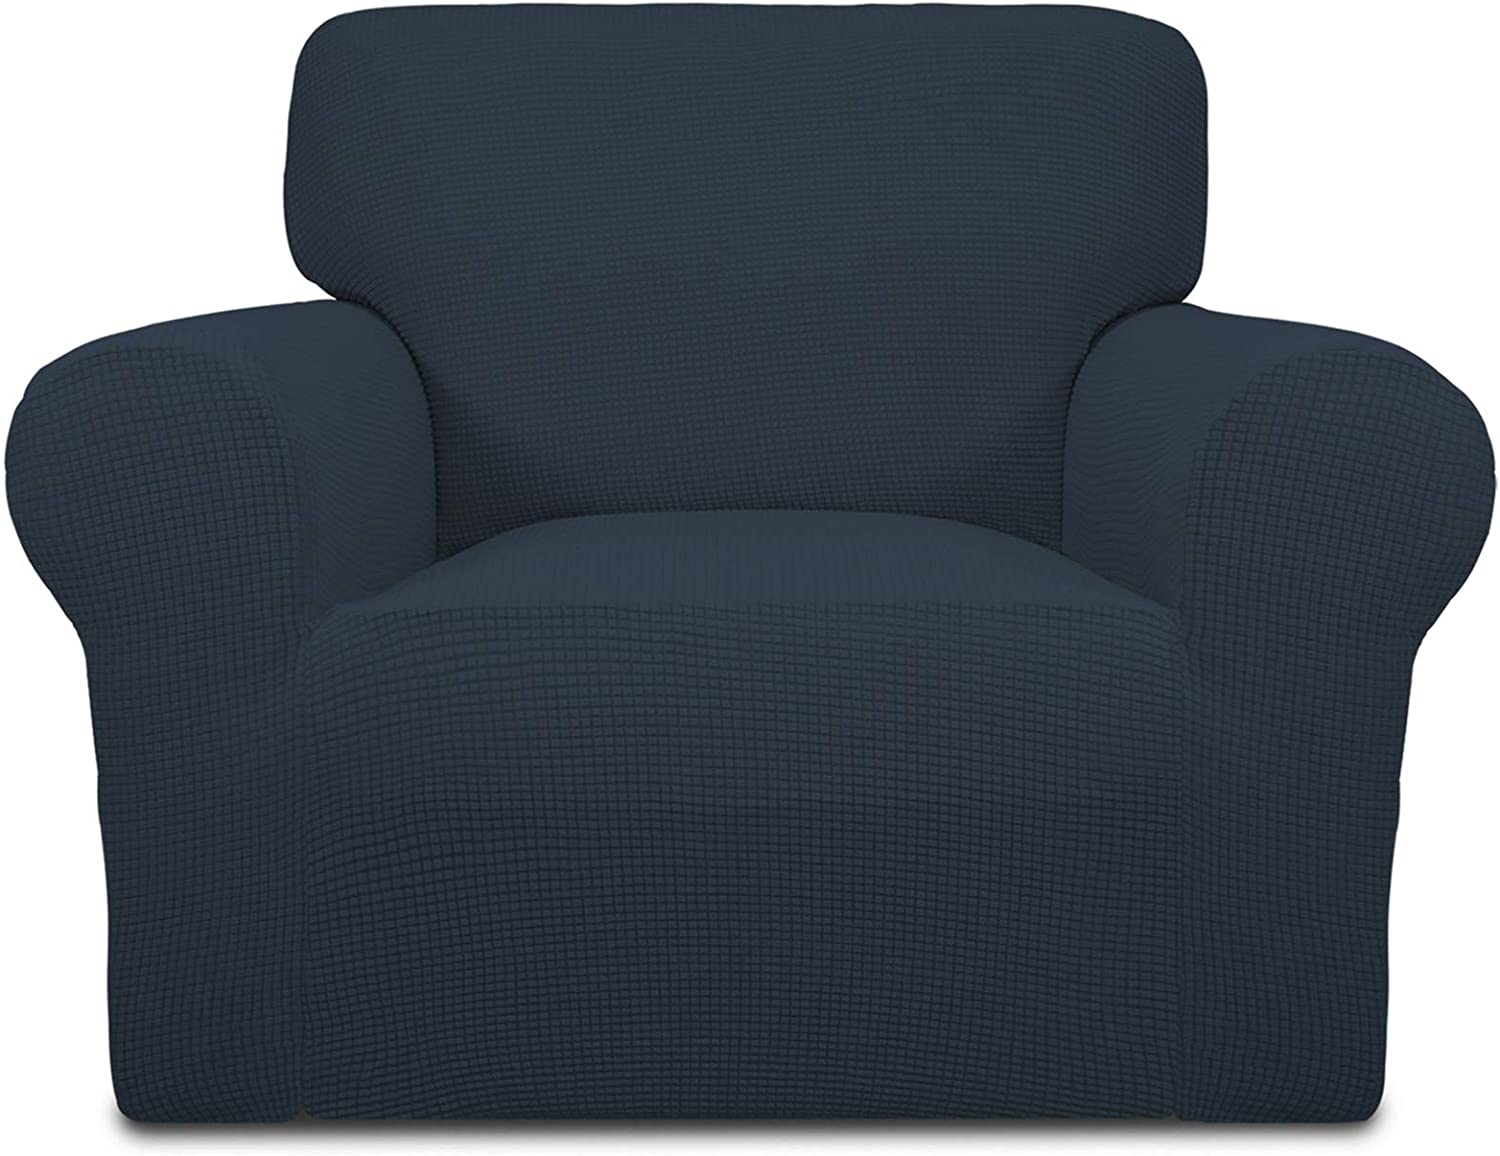 Easy-Going Stretch Chair Sofa Slipcover 1-Piece Couch Sofa Cover Furniture Protector Soft with Elastic Bottom for Kids,Pet. Spandex Jacquard Fabric Small Checks(Chair,Dark Blue)